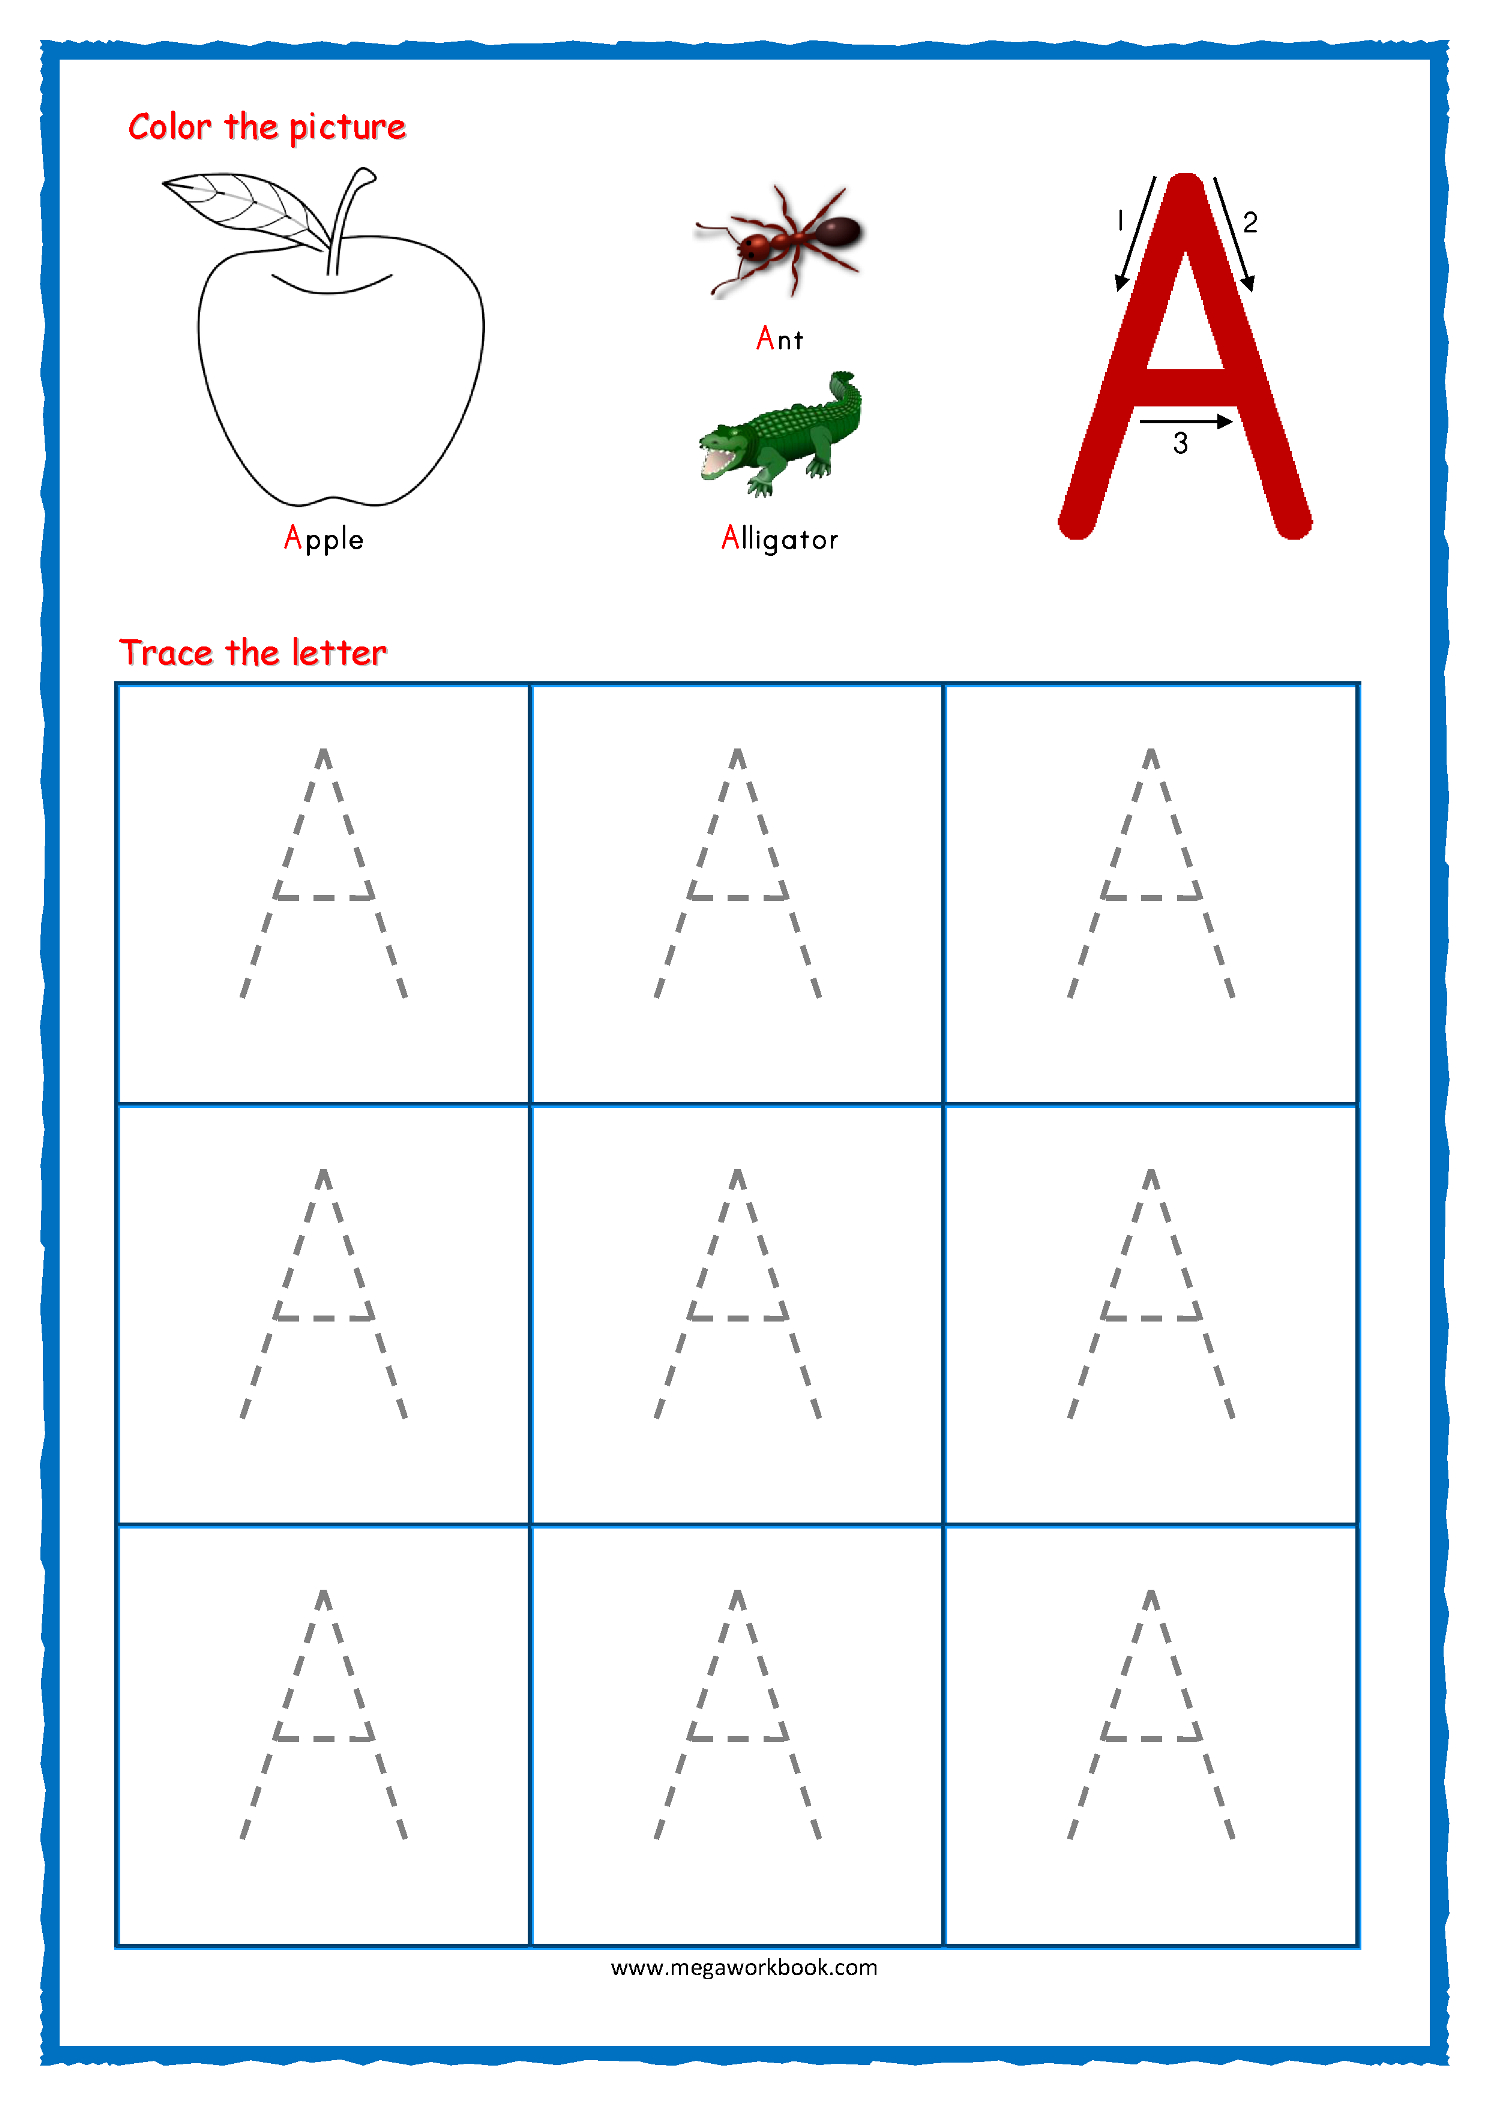 Coloring Book : Coloring Book Alphabet Tracing Worksheets for Tracing Letter A Worksheets